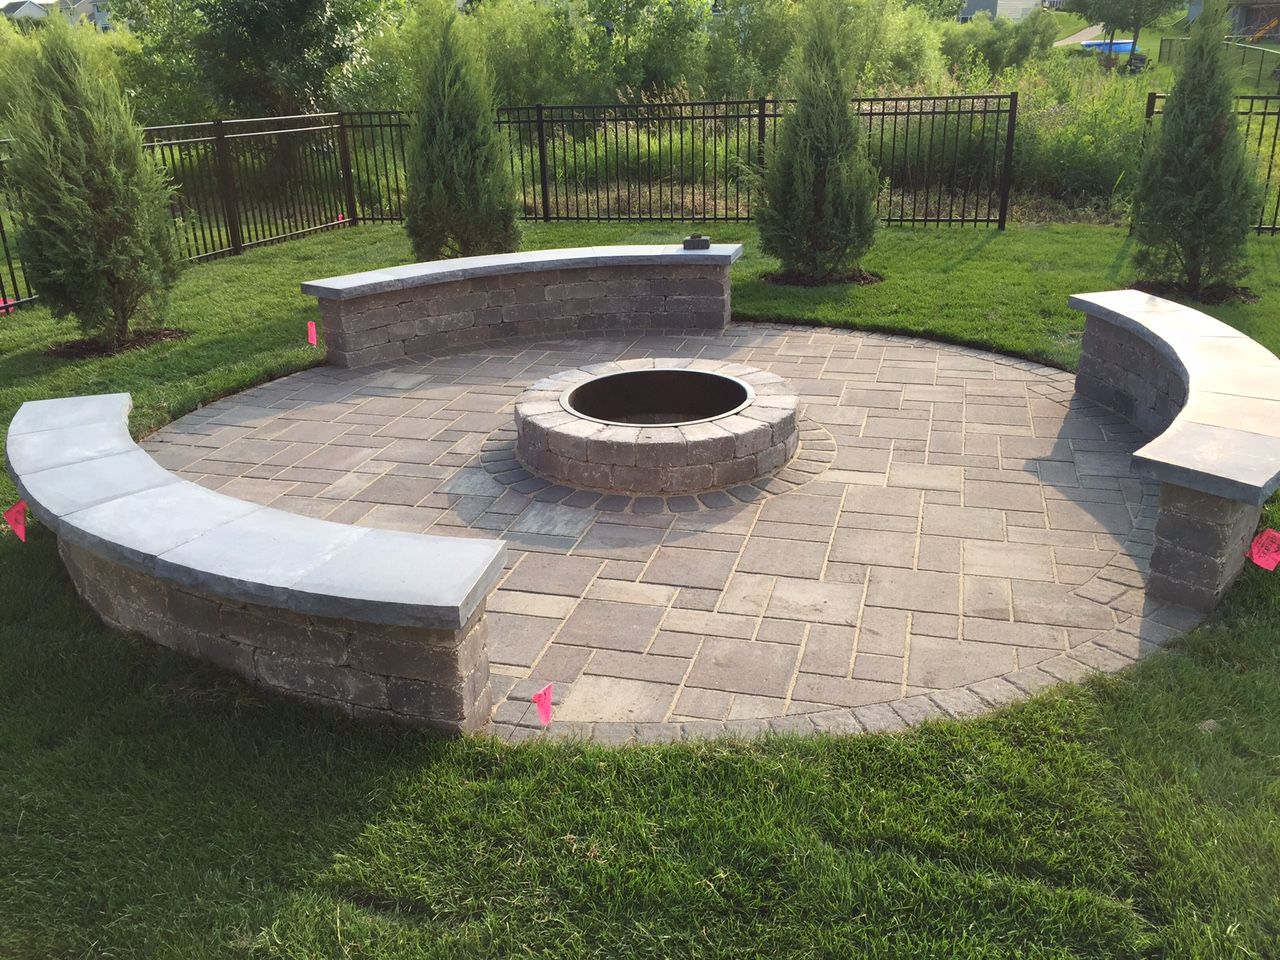 Exceptionnel Rockwood Riverland Seat Wall With Silver Creek Caps, Rockwood Grand Fire  Pit Ring, Interlock